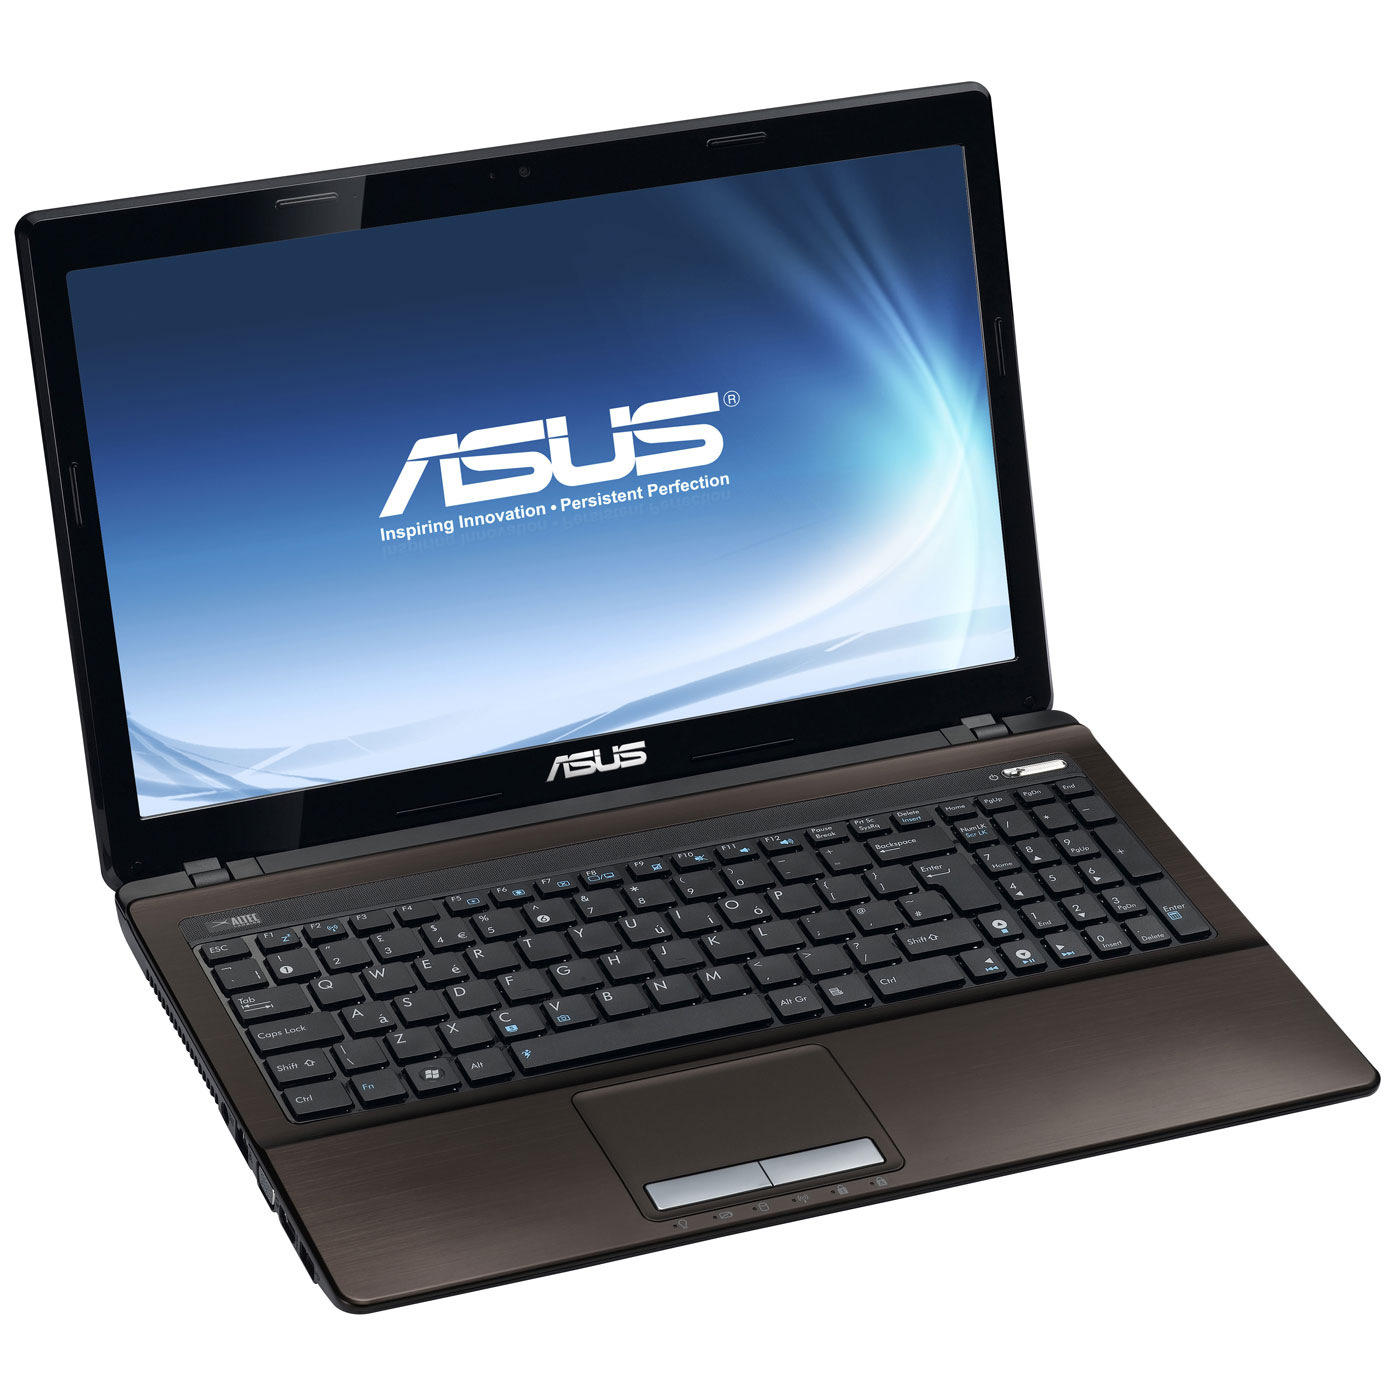 "PC portable ASUS K53SD-SX596V Marron Intel Core i5-2450M 4 Go 750 Go 15.6"" LED NVIDIA GeForce GT 610M Graveur DVD Wi-Fi N/Bluetooth Webcam Windows 7 Premium 64 bits (garantie constructeur 2 ans)"